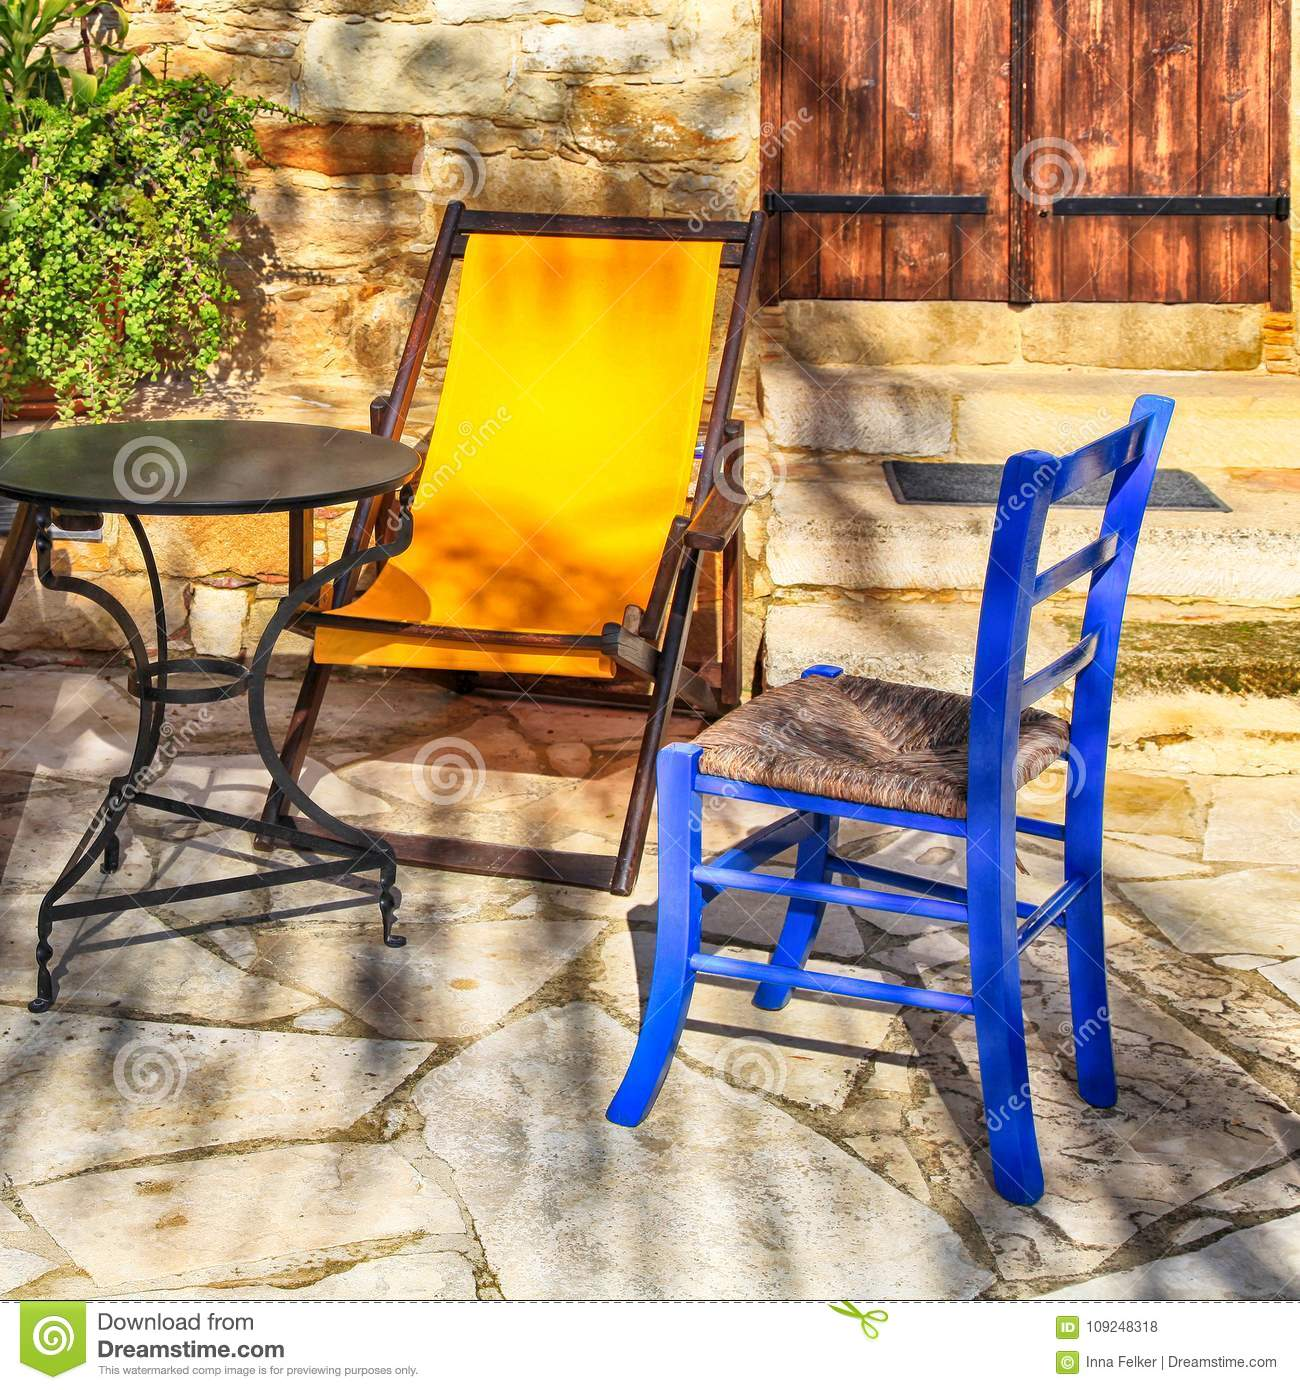 Table and outdoor chairs on terrace with flower pots in beautiful small yard square image